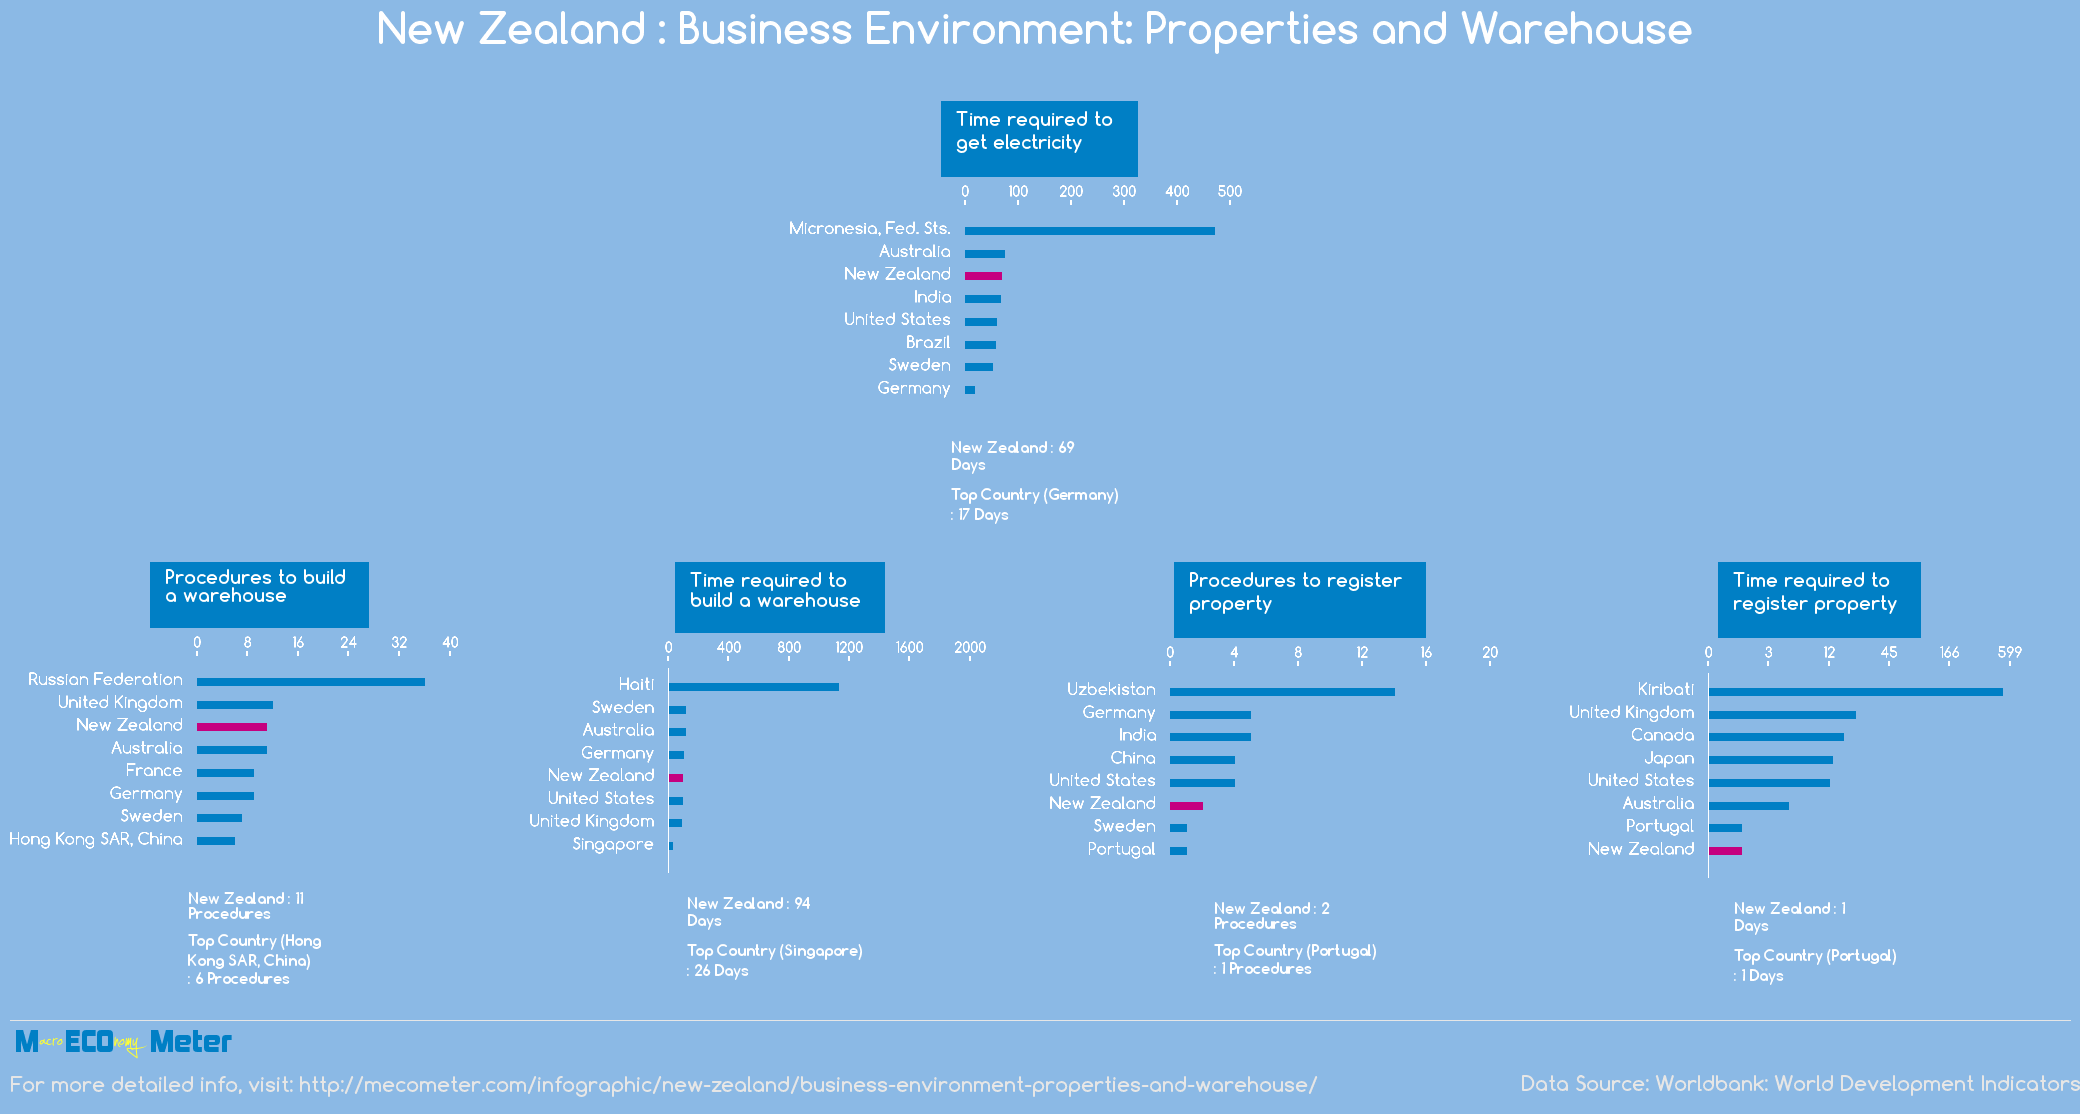 New Zealand : Business Environment: Properties and Warehouse